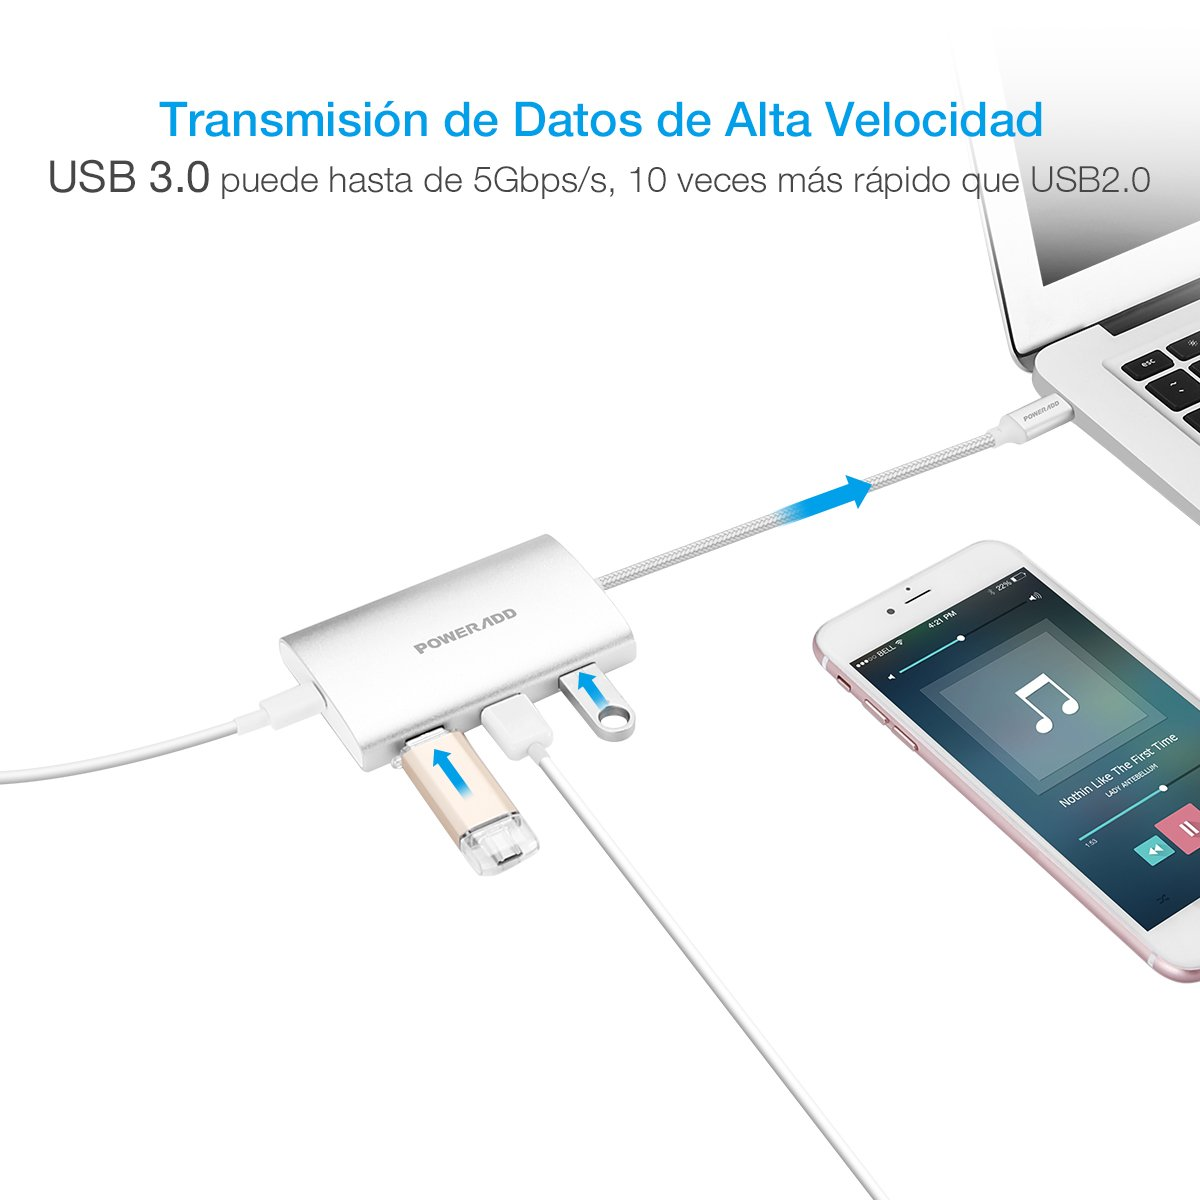 POWERADD Hub USB 3.0 3 Puertos con 1 Puerto Type-C con PD para Mac Book, New Mac Book y Otros Dispositivos de Type C-Argentado